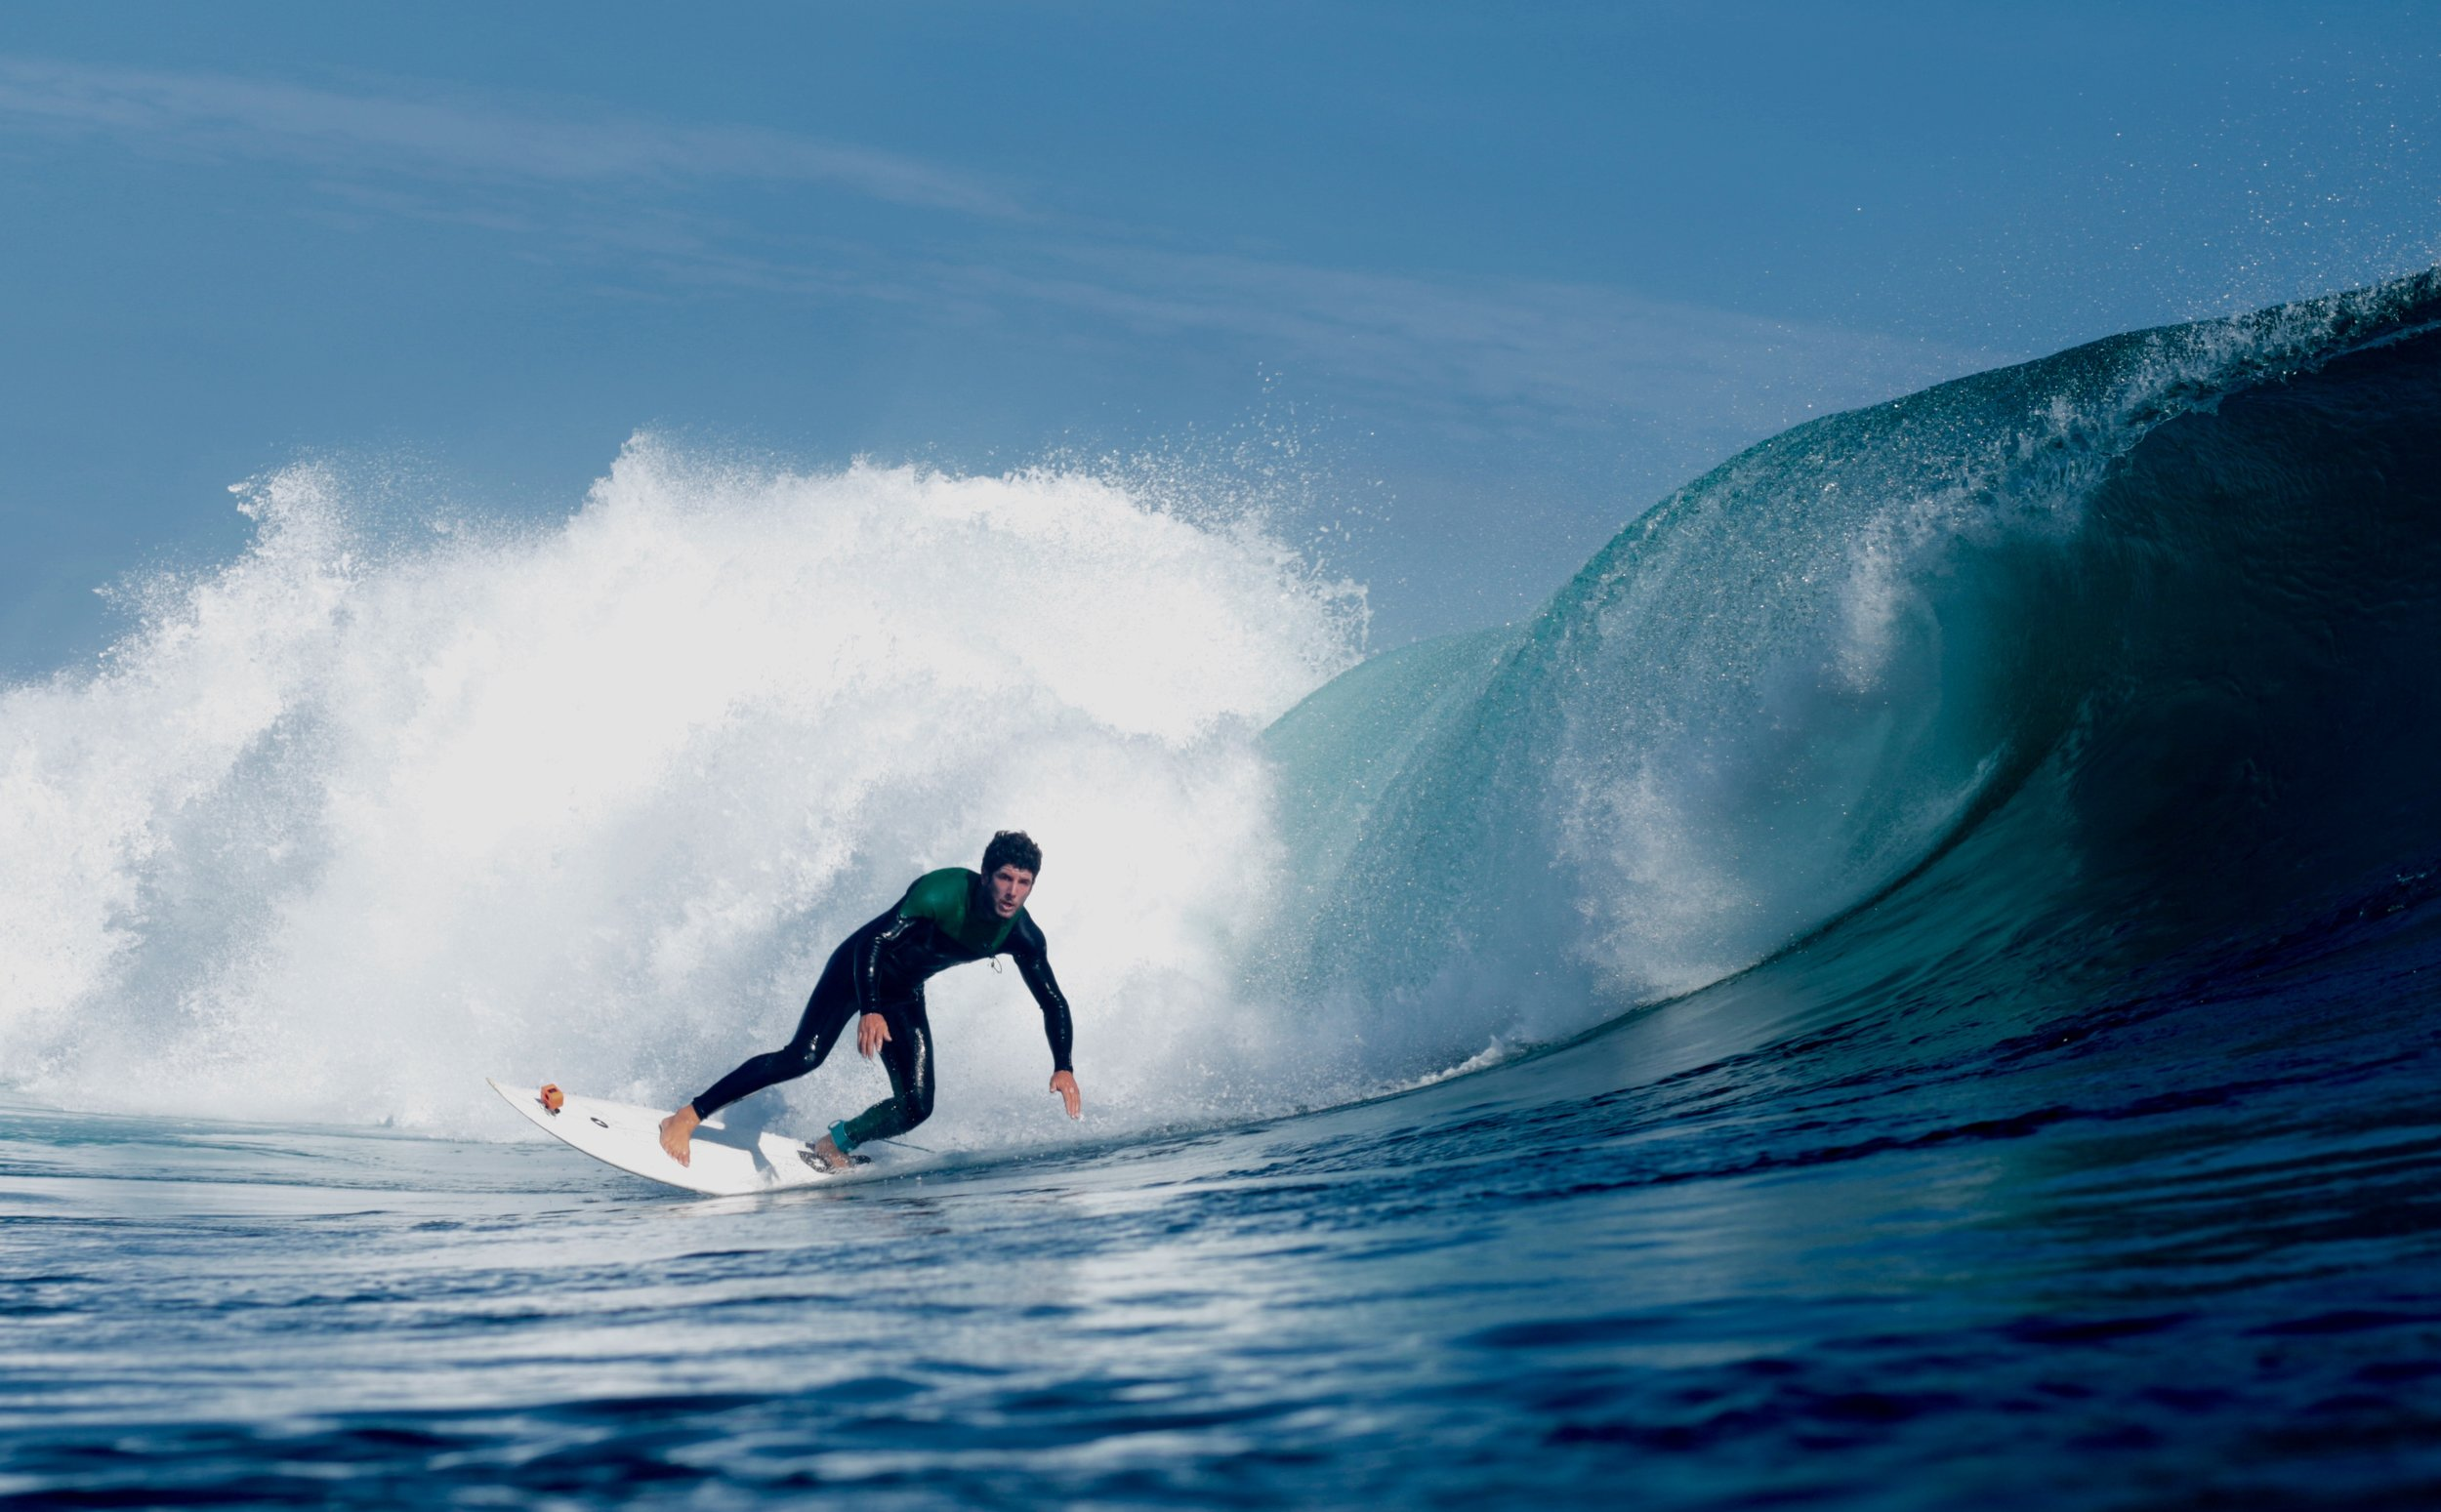 Nicolas Andrade take a break from behind the lens to snavel a few gems of his won. Picture by Briandy. If you are on Santa Cruz island and wish to access the best waves do not hesitate to contact local surf guide and complete legend  Nicolas Andrade (thepointsurf.gps@gmail.com) who always has his finger on the pulse. Andrés Durán sets his line on the peak.